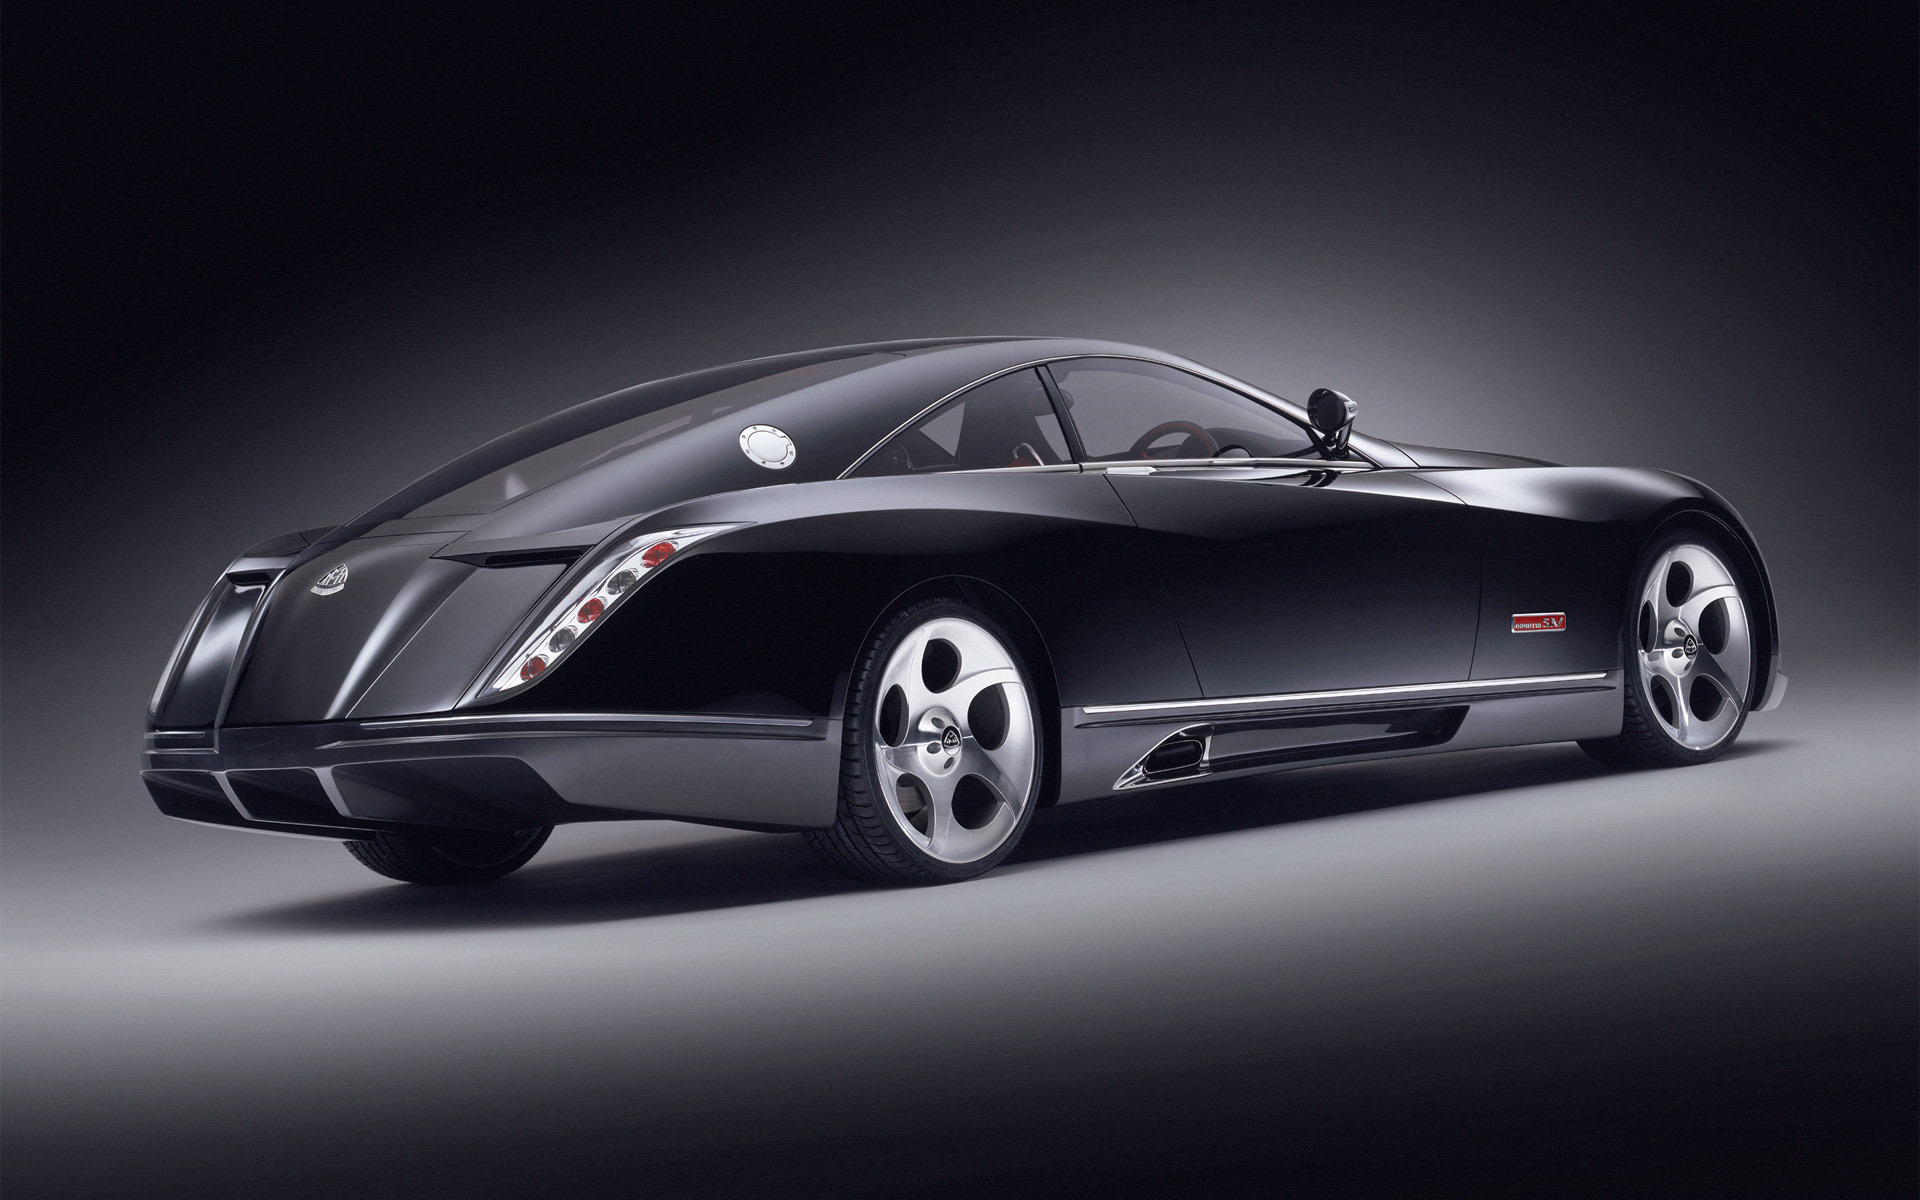 Mclaren F1 Interior >> 2005 Maybach Exelero | Mercedes-Benz